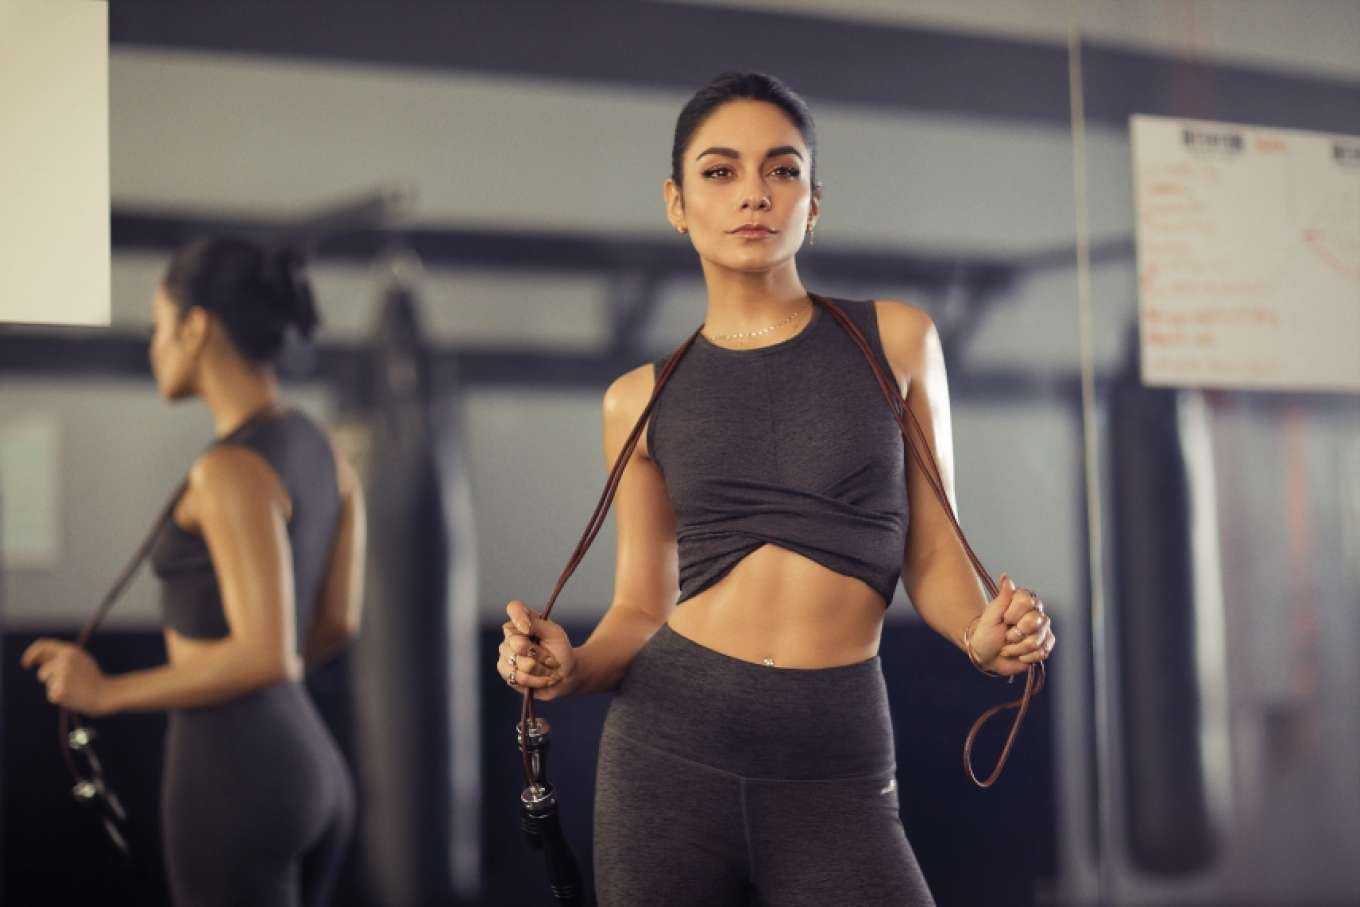 Vanessa Hudgens 2019 : Vanessa Hudgens – Vanessa Hudgens Collection x Avia Fitness 2019-07